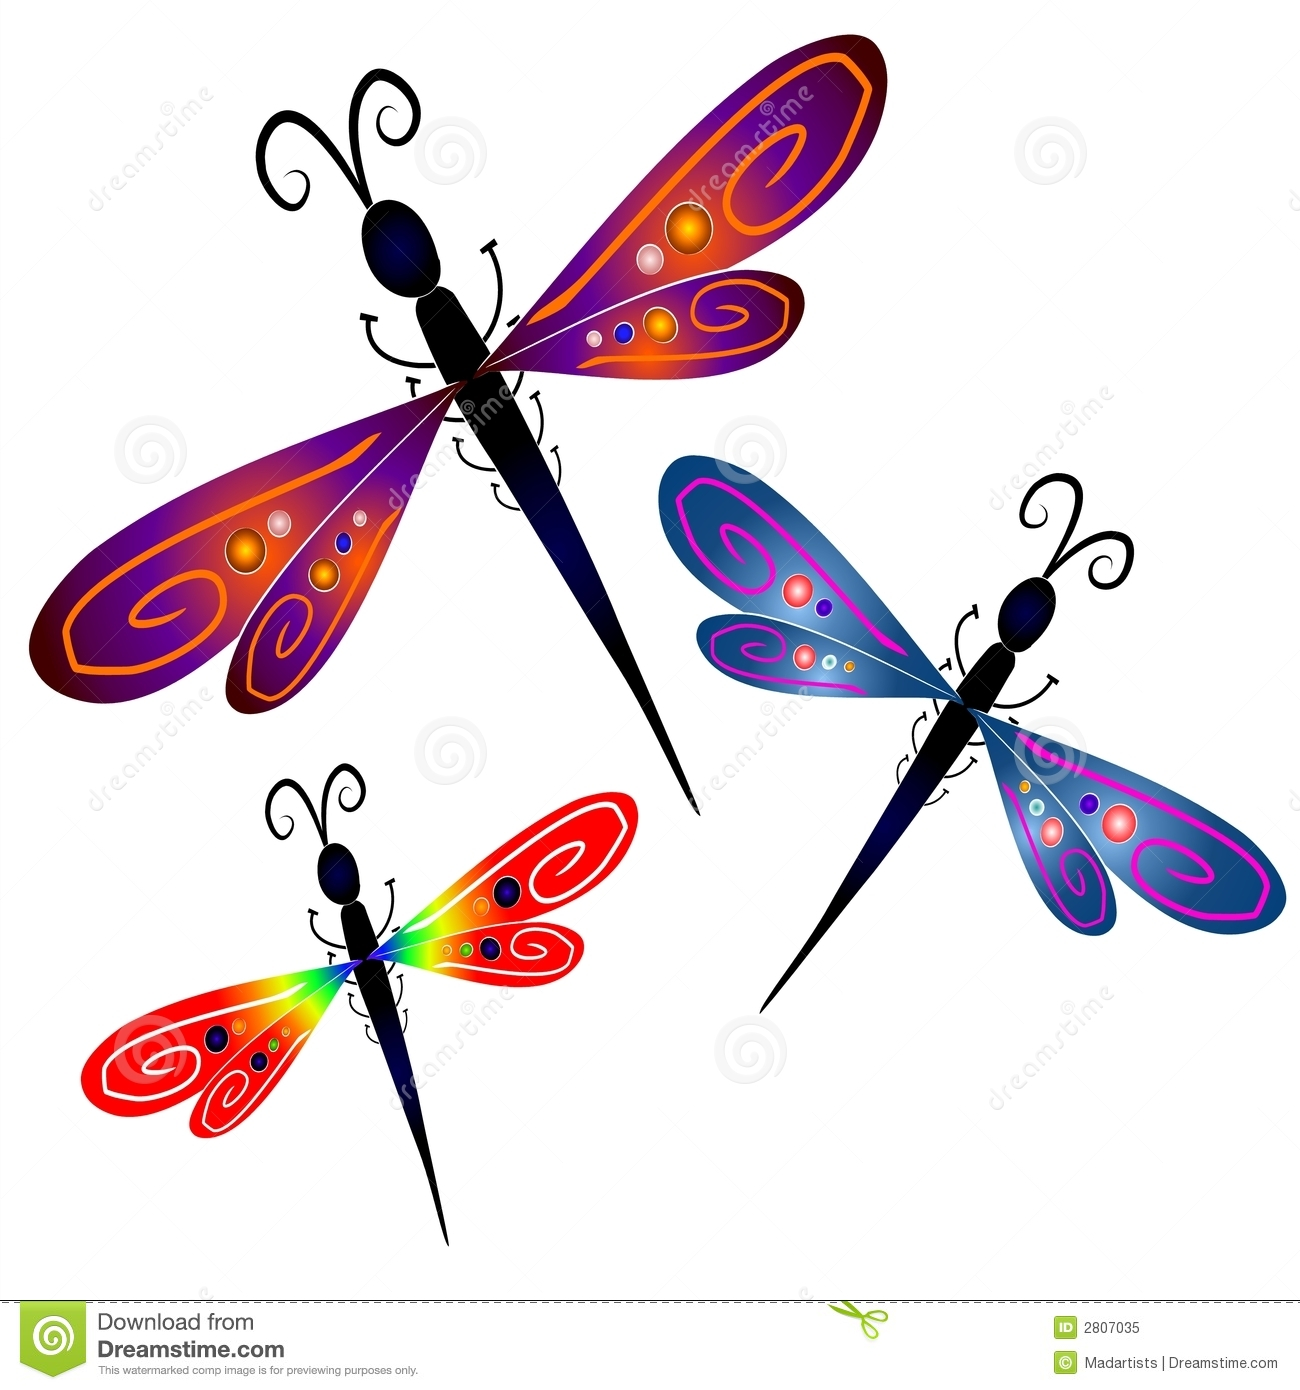 abstract dragonfly clip art stock illustration illustration of rh dreamstime com royalty free clip art commercial use royalty free clip art-campers